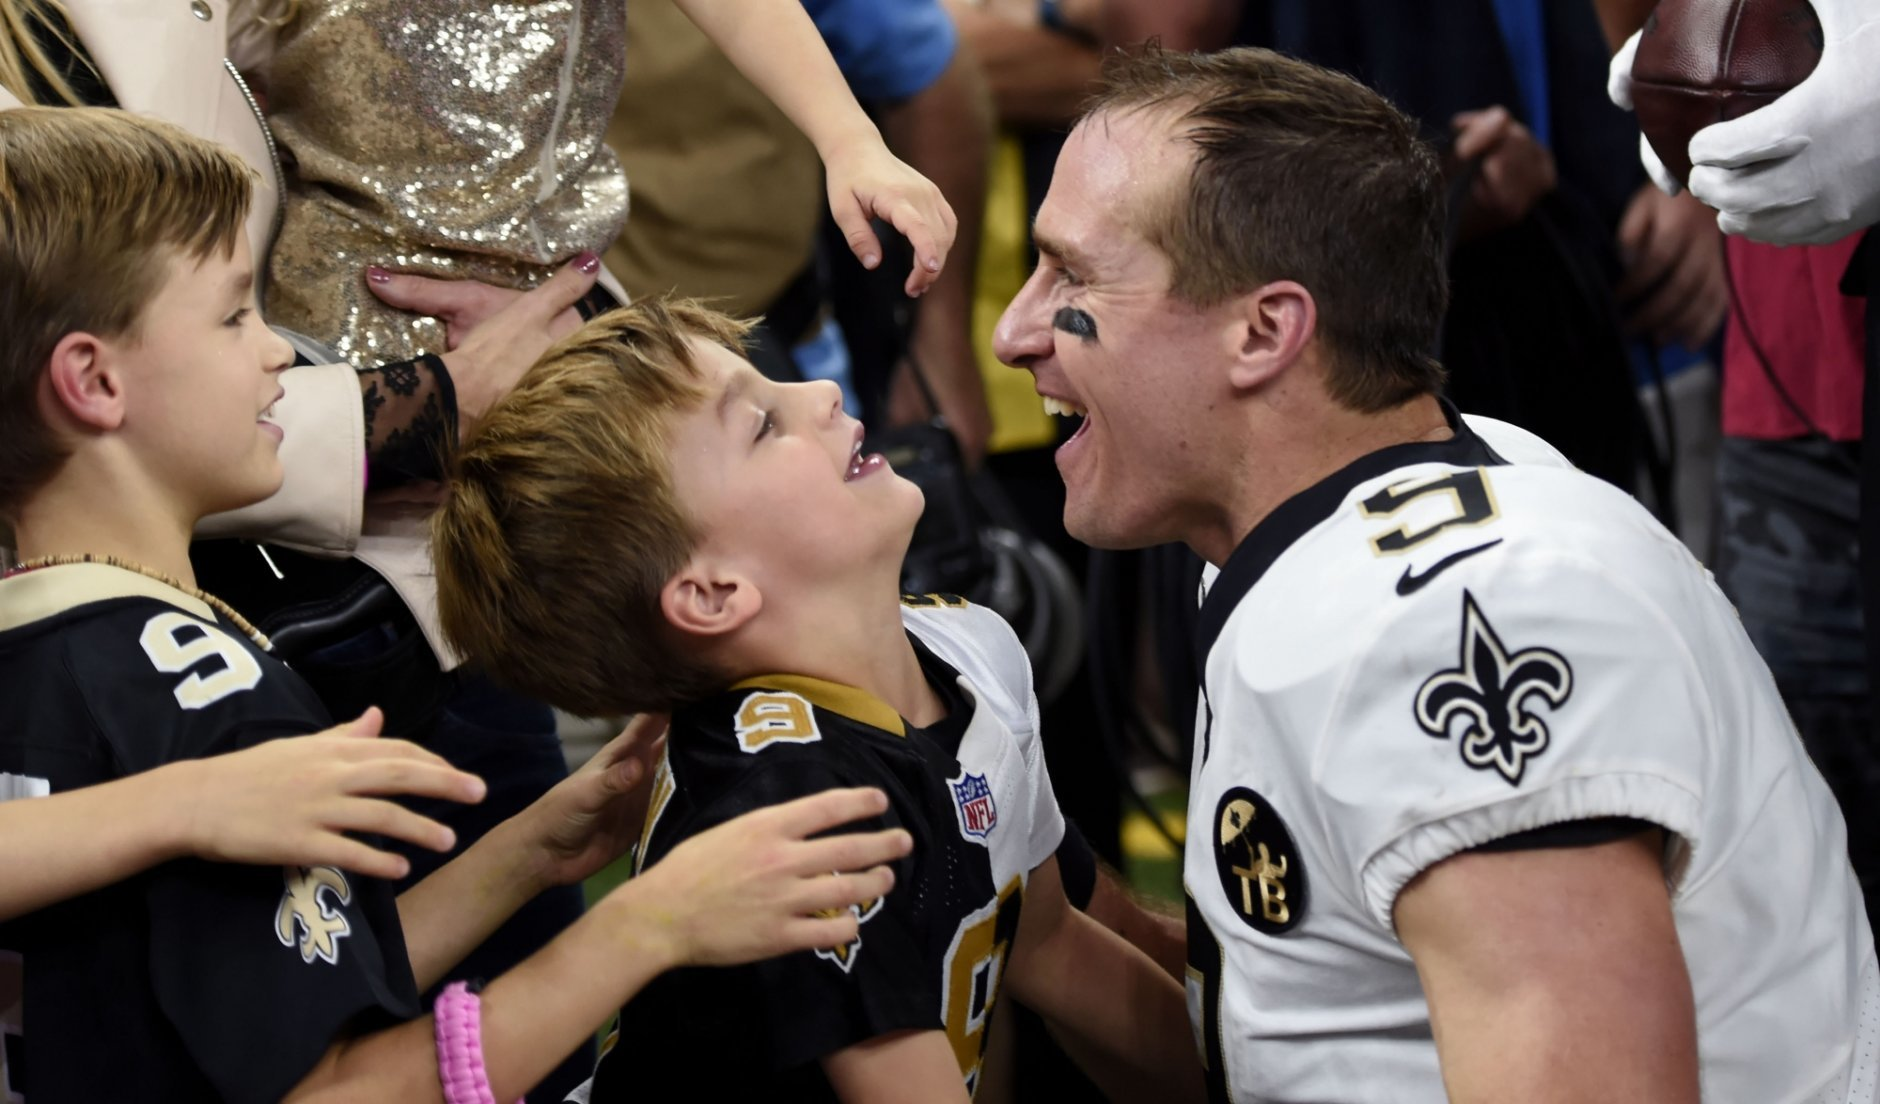 New Orleans Saints quarterback Drew Brees (9) greets his family after he broke the NFL all-time passing yards record in the first half of an NFL football game against the Washington Redskins in New Orleans, Monday, Oct. 8, 2018. (AP Photo/Bill Feig)